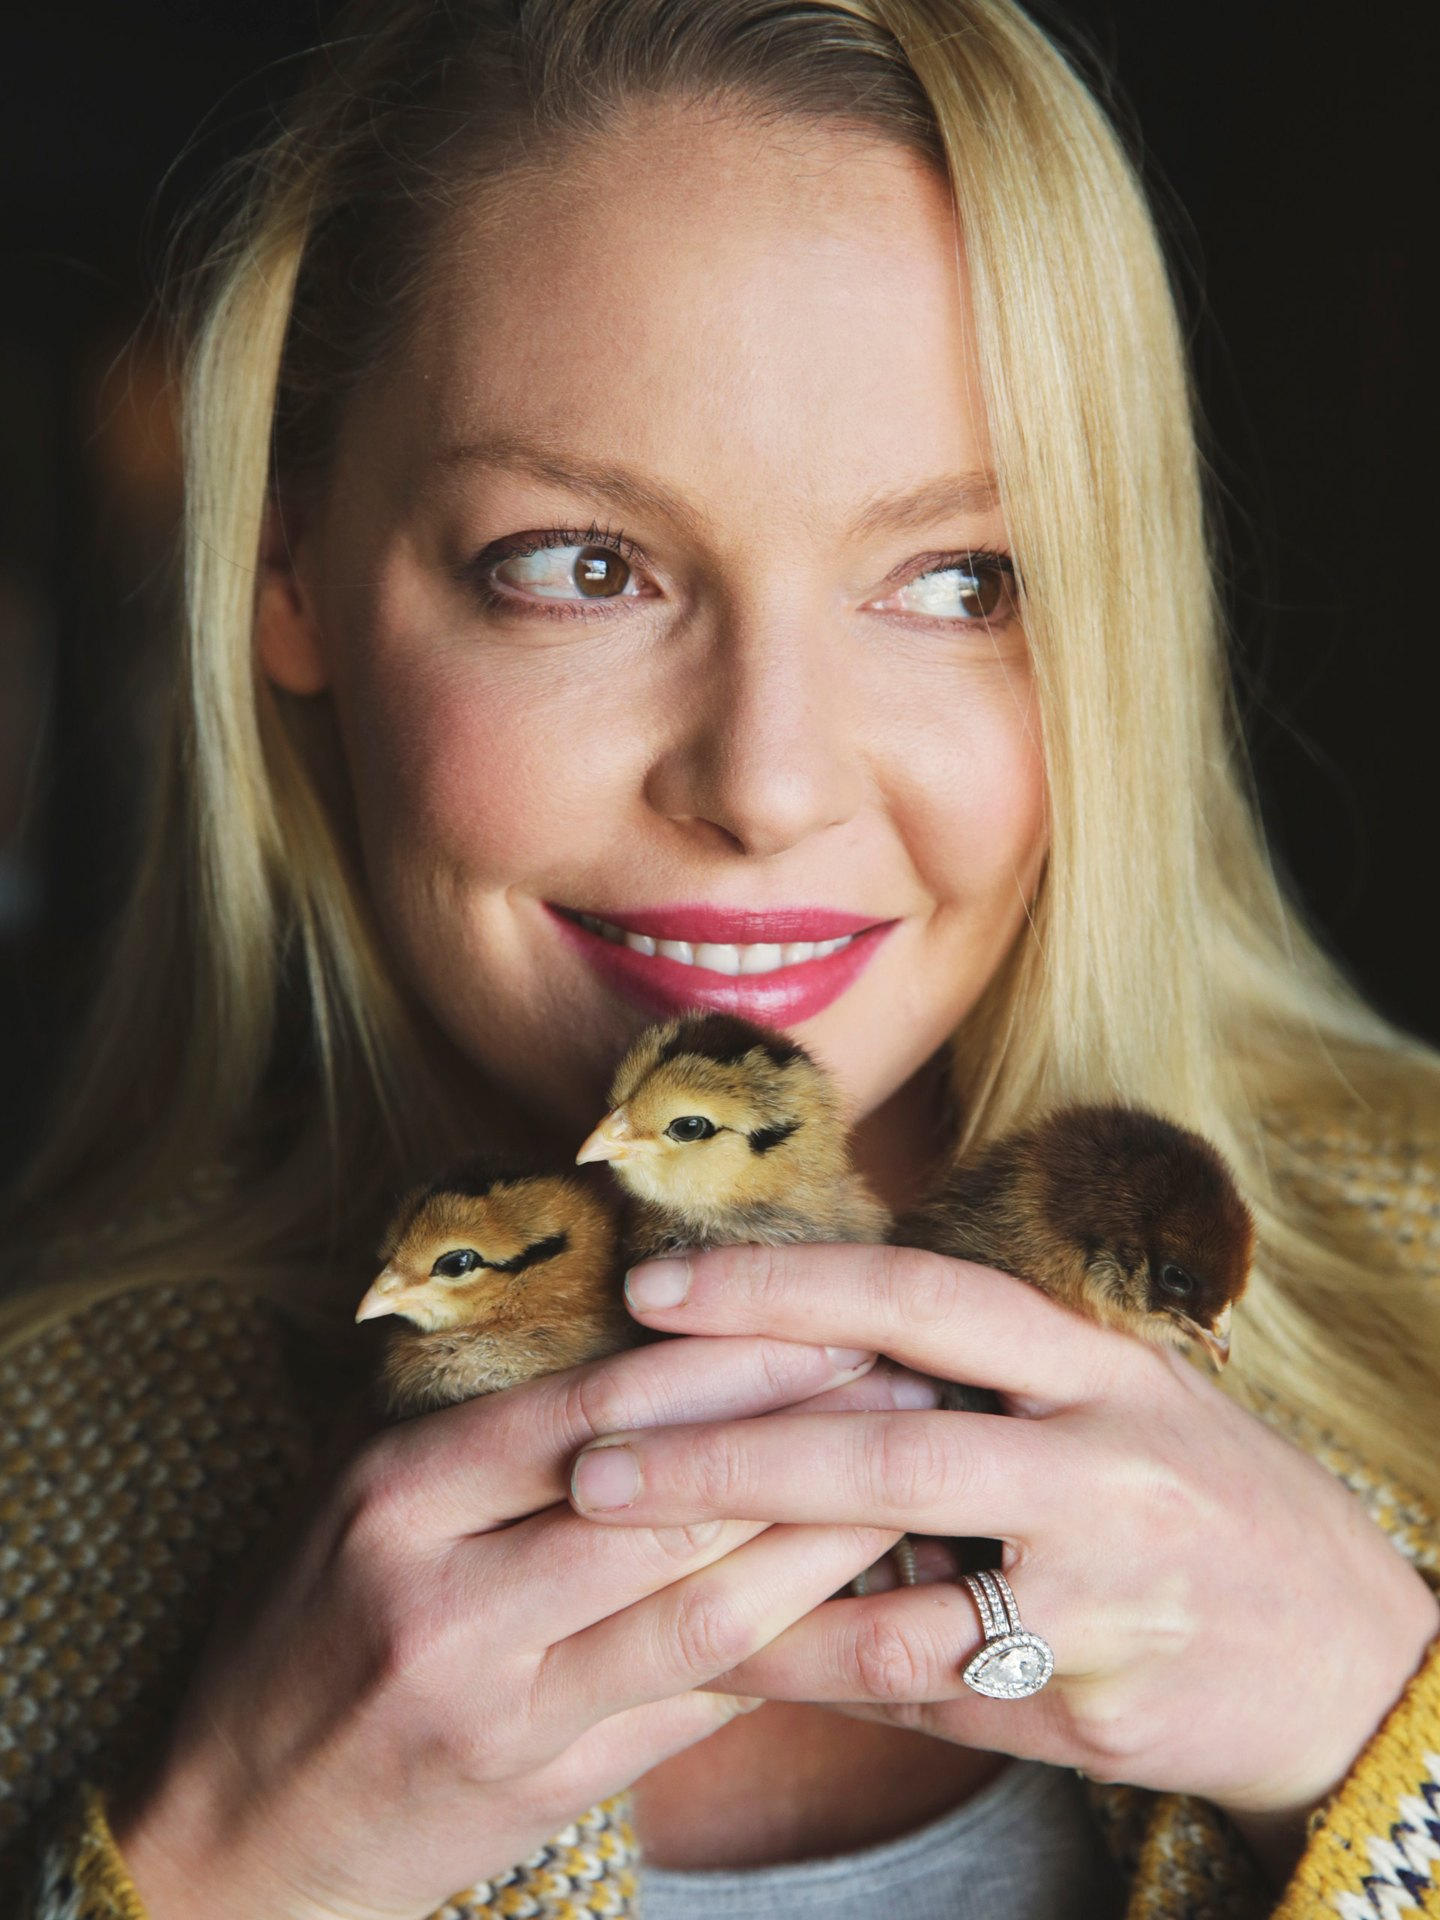 Katherine Heigl Holding Chicks